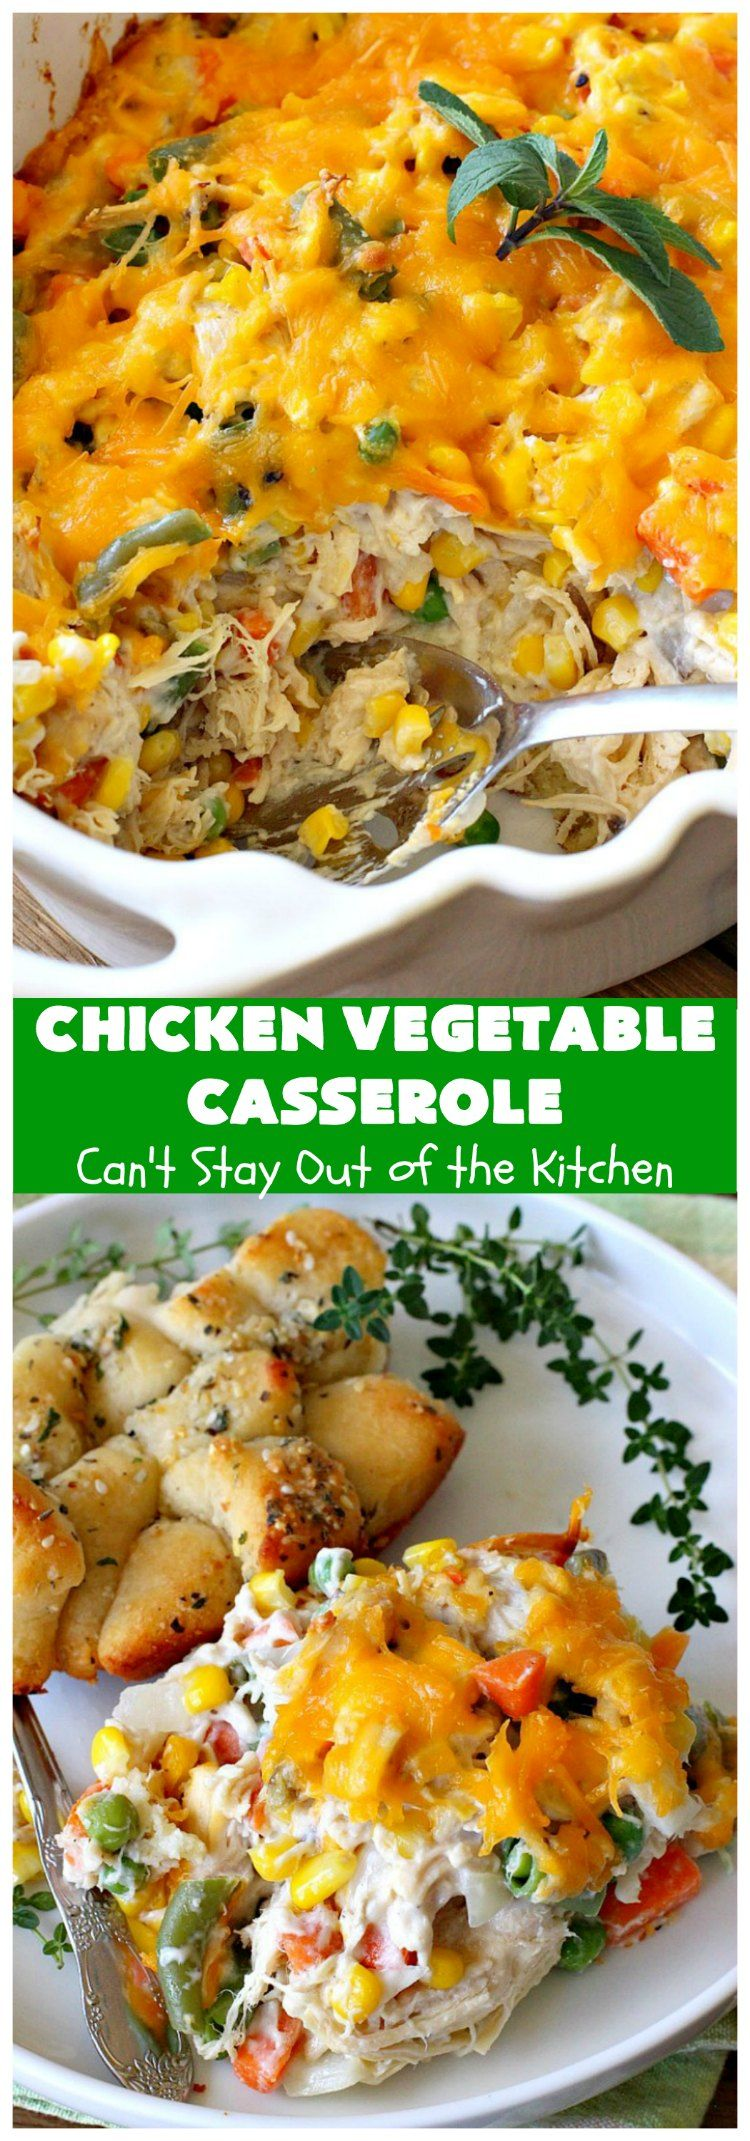 Chicken Vegetable Casserole Can T Stay Out Of The Kitchen Chicken And Vegetable Casserole Vegetable Casserole Recipes Main Dish Recipes